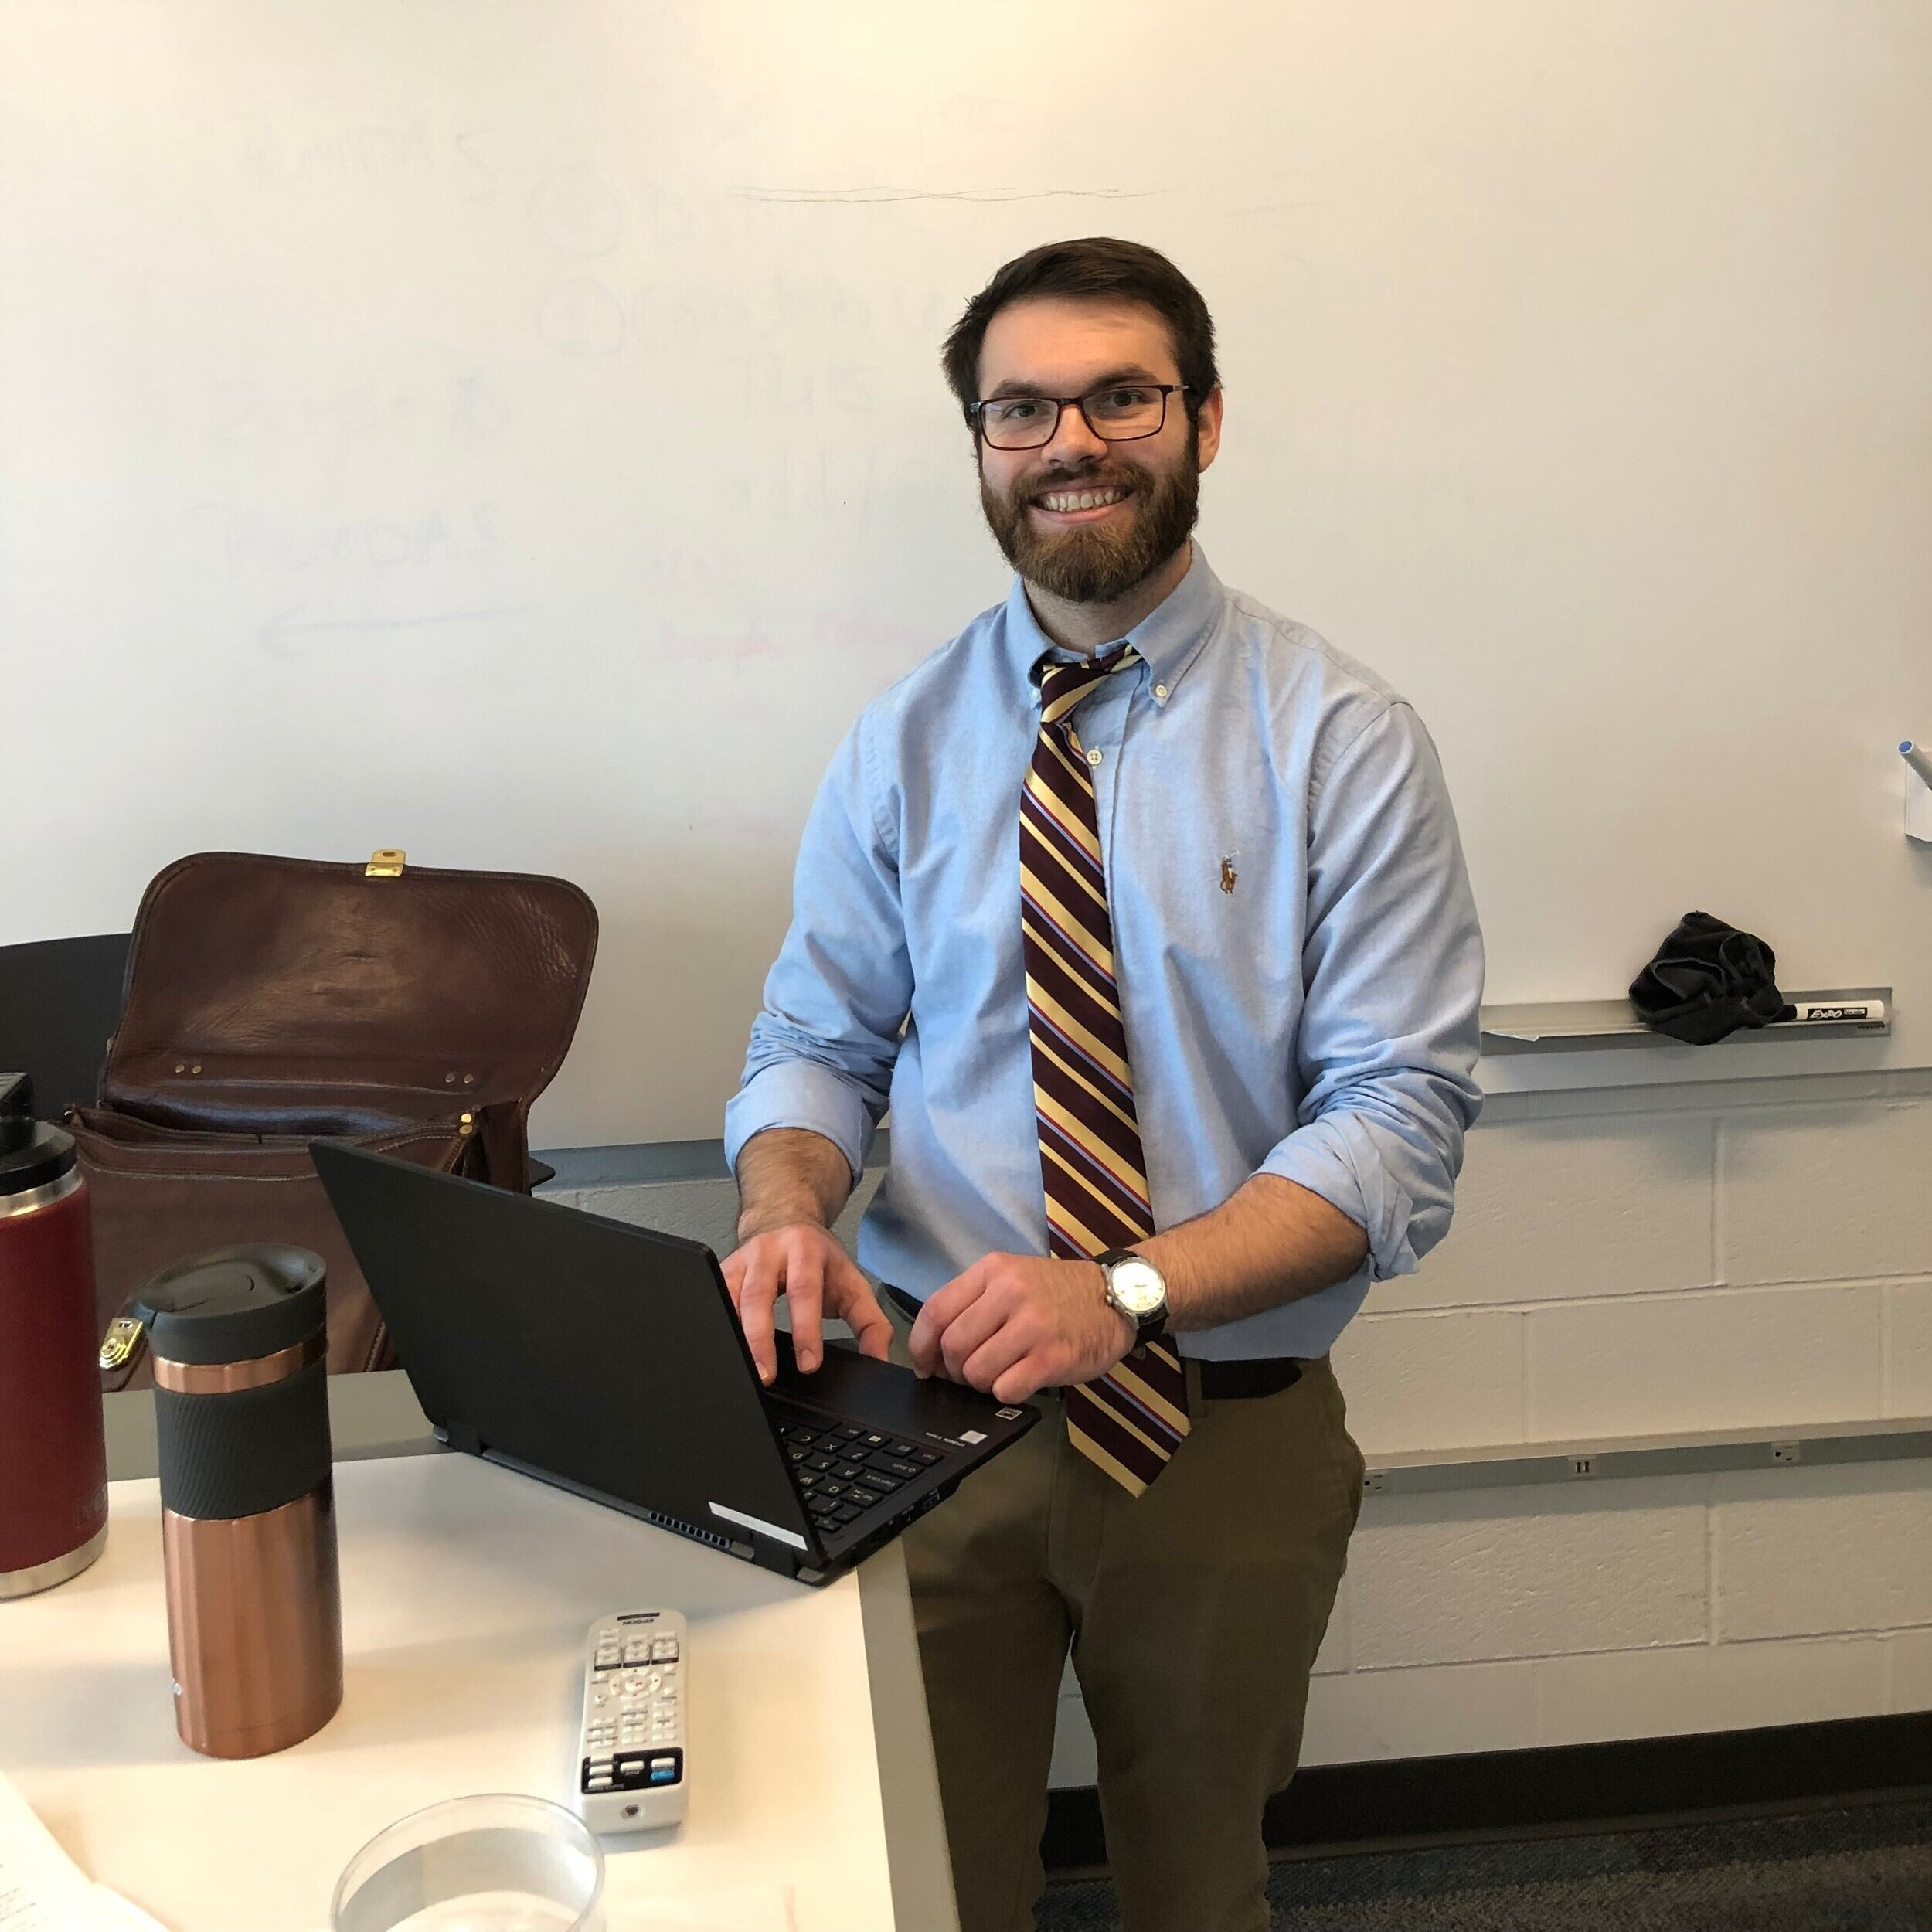 Mr. Battista at his desk  by Ethan Holley